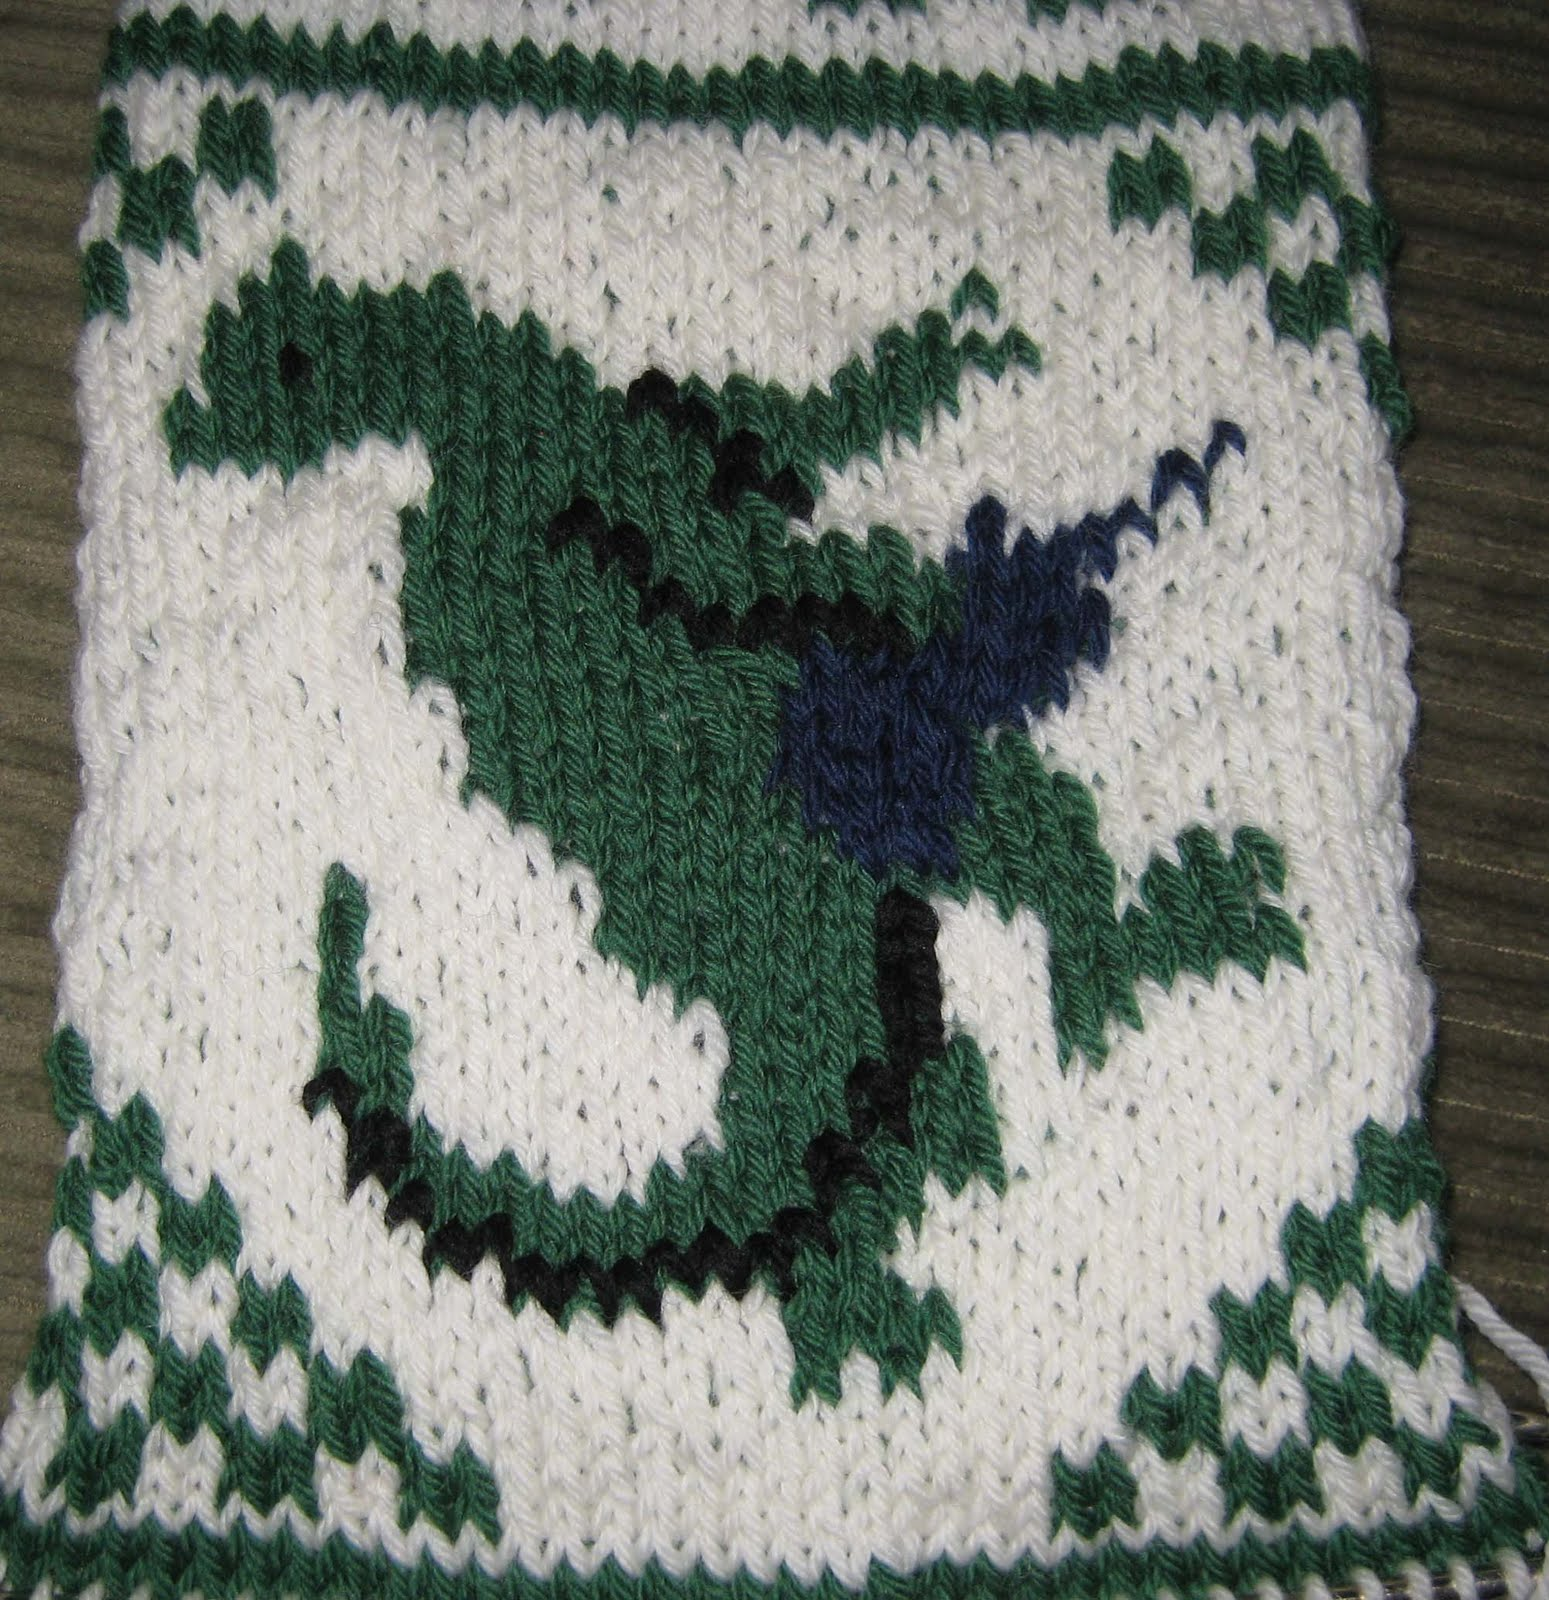 ChemKnits: Guitar Playing Dinosaurs Knitting Charts!